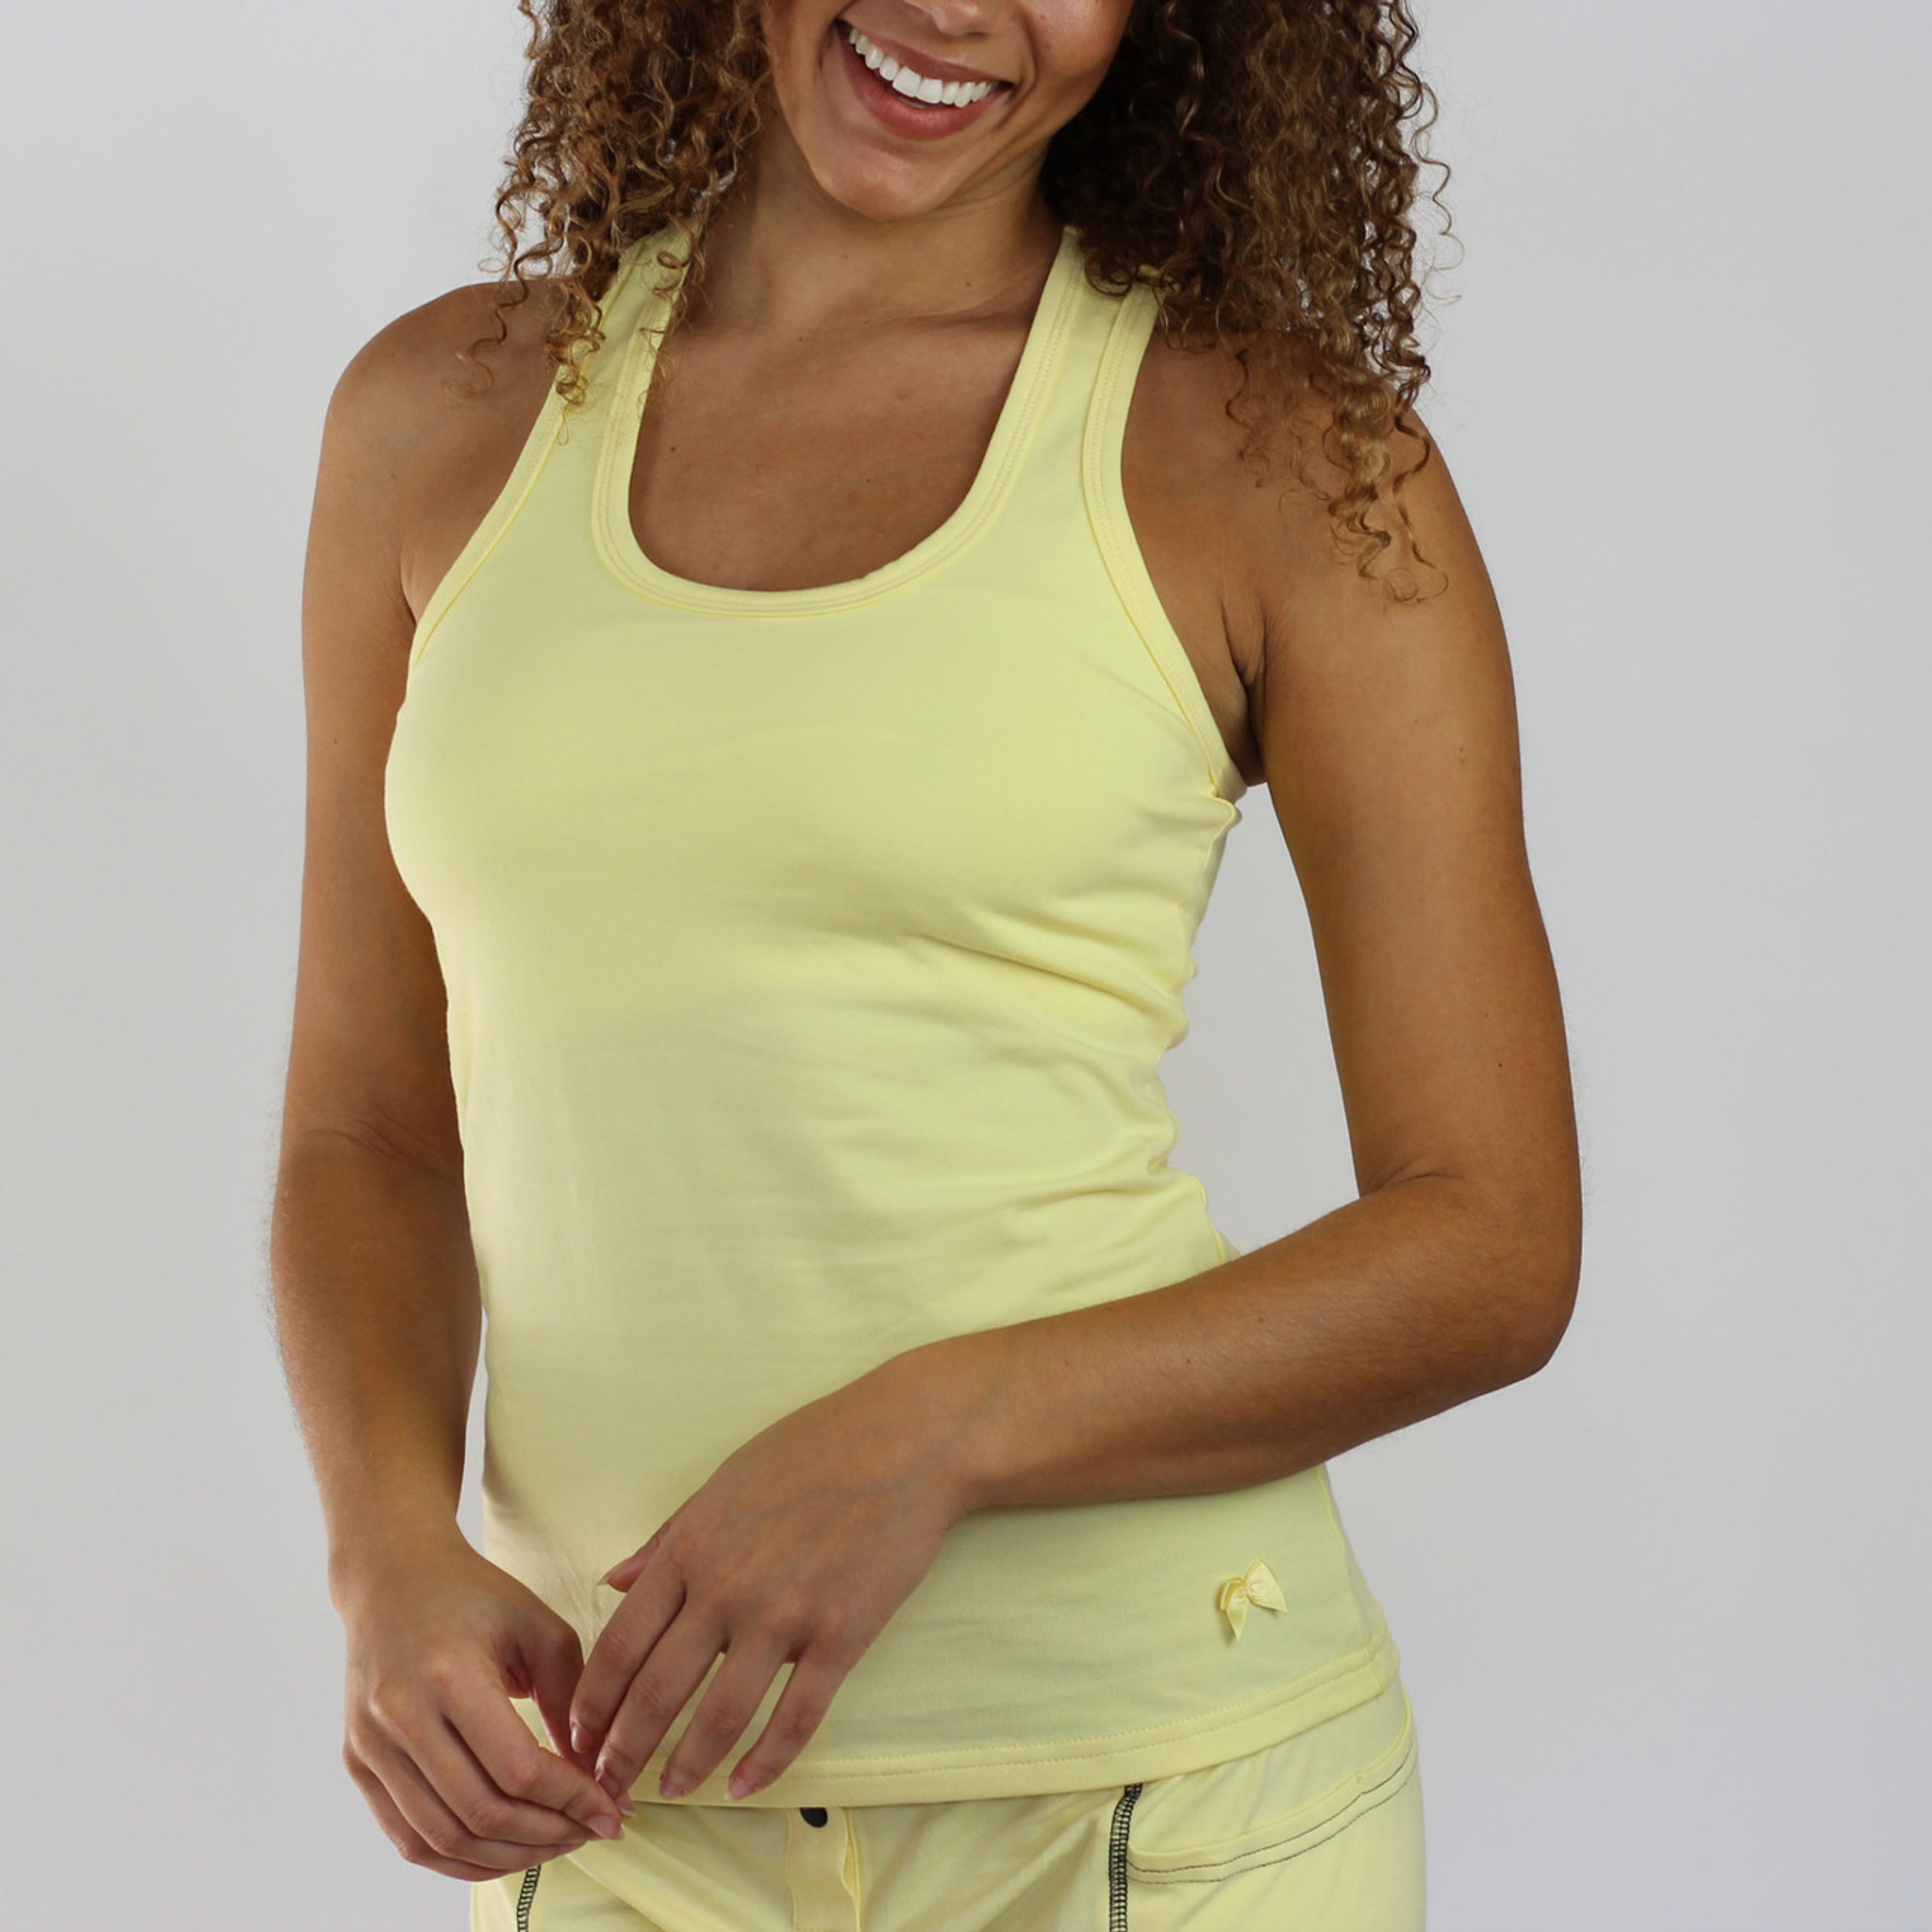 3f53bc8b45f152 Butter Yellow Racerback With Built in Shelf Bra